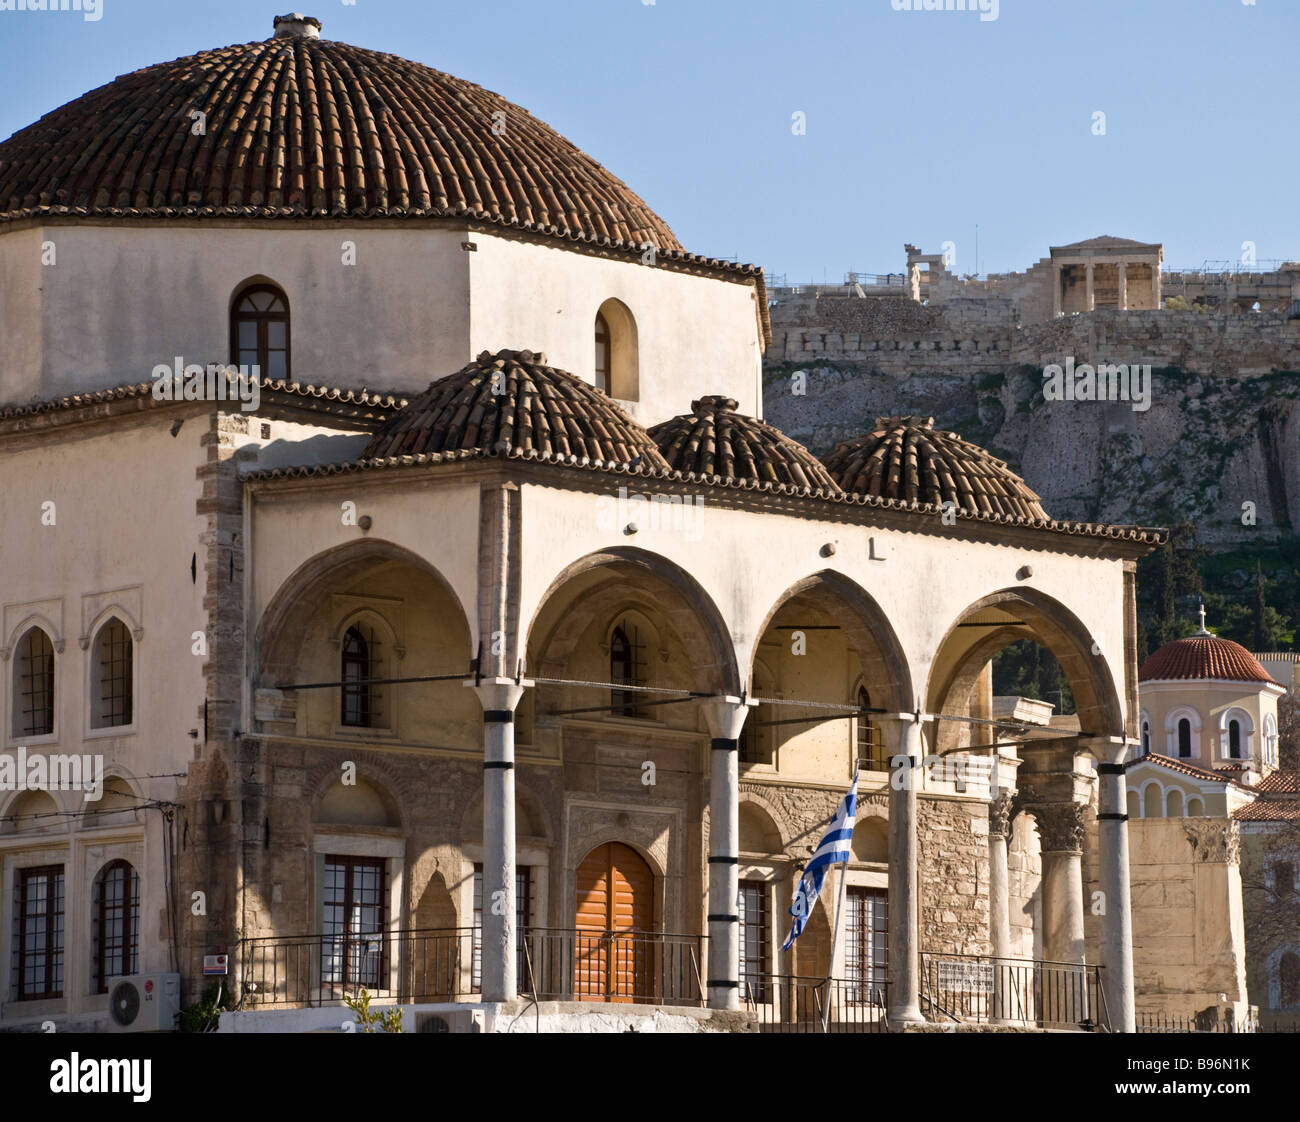 Looking up from theTzisdarakis mosque in Monastiraki square towards the hill of the Acropolis, Plaka, Central Athens, - Stock Image